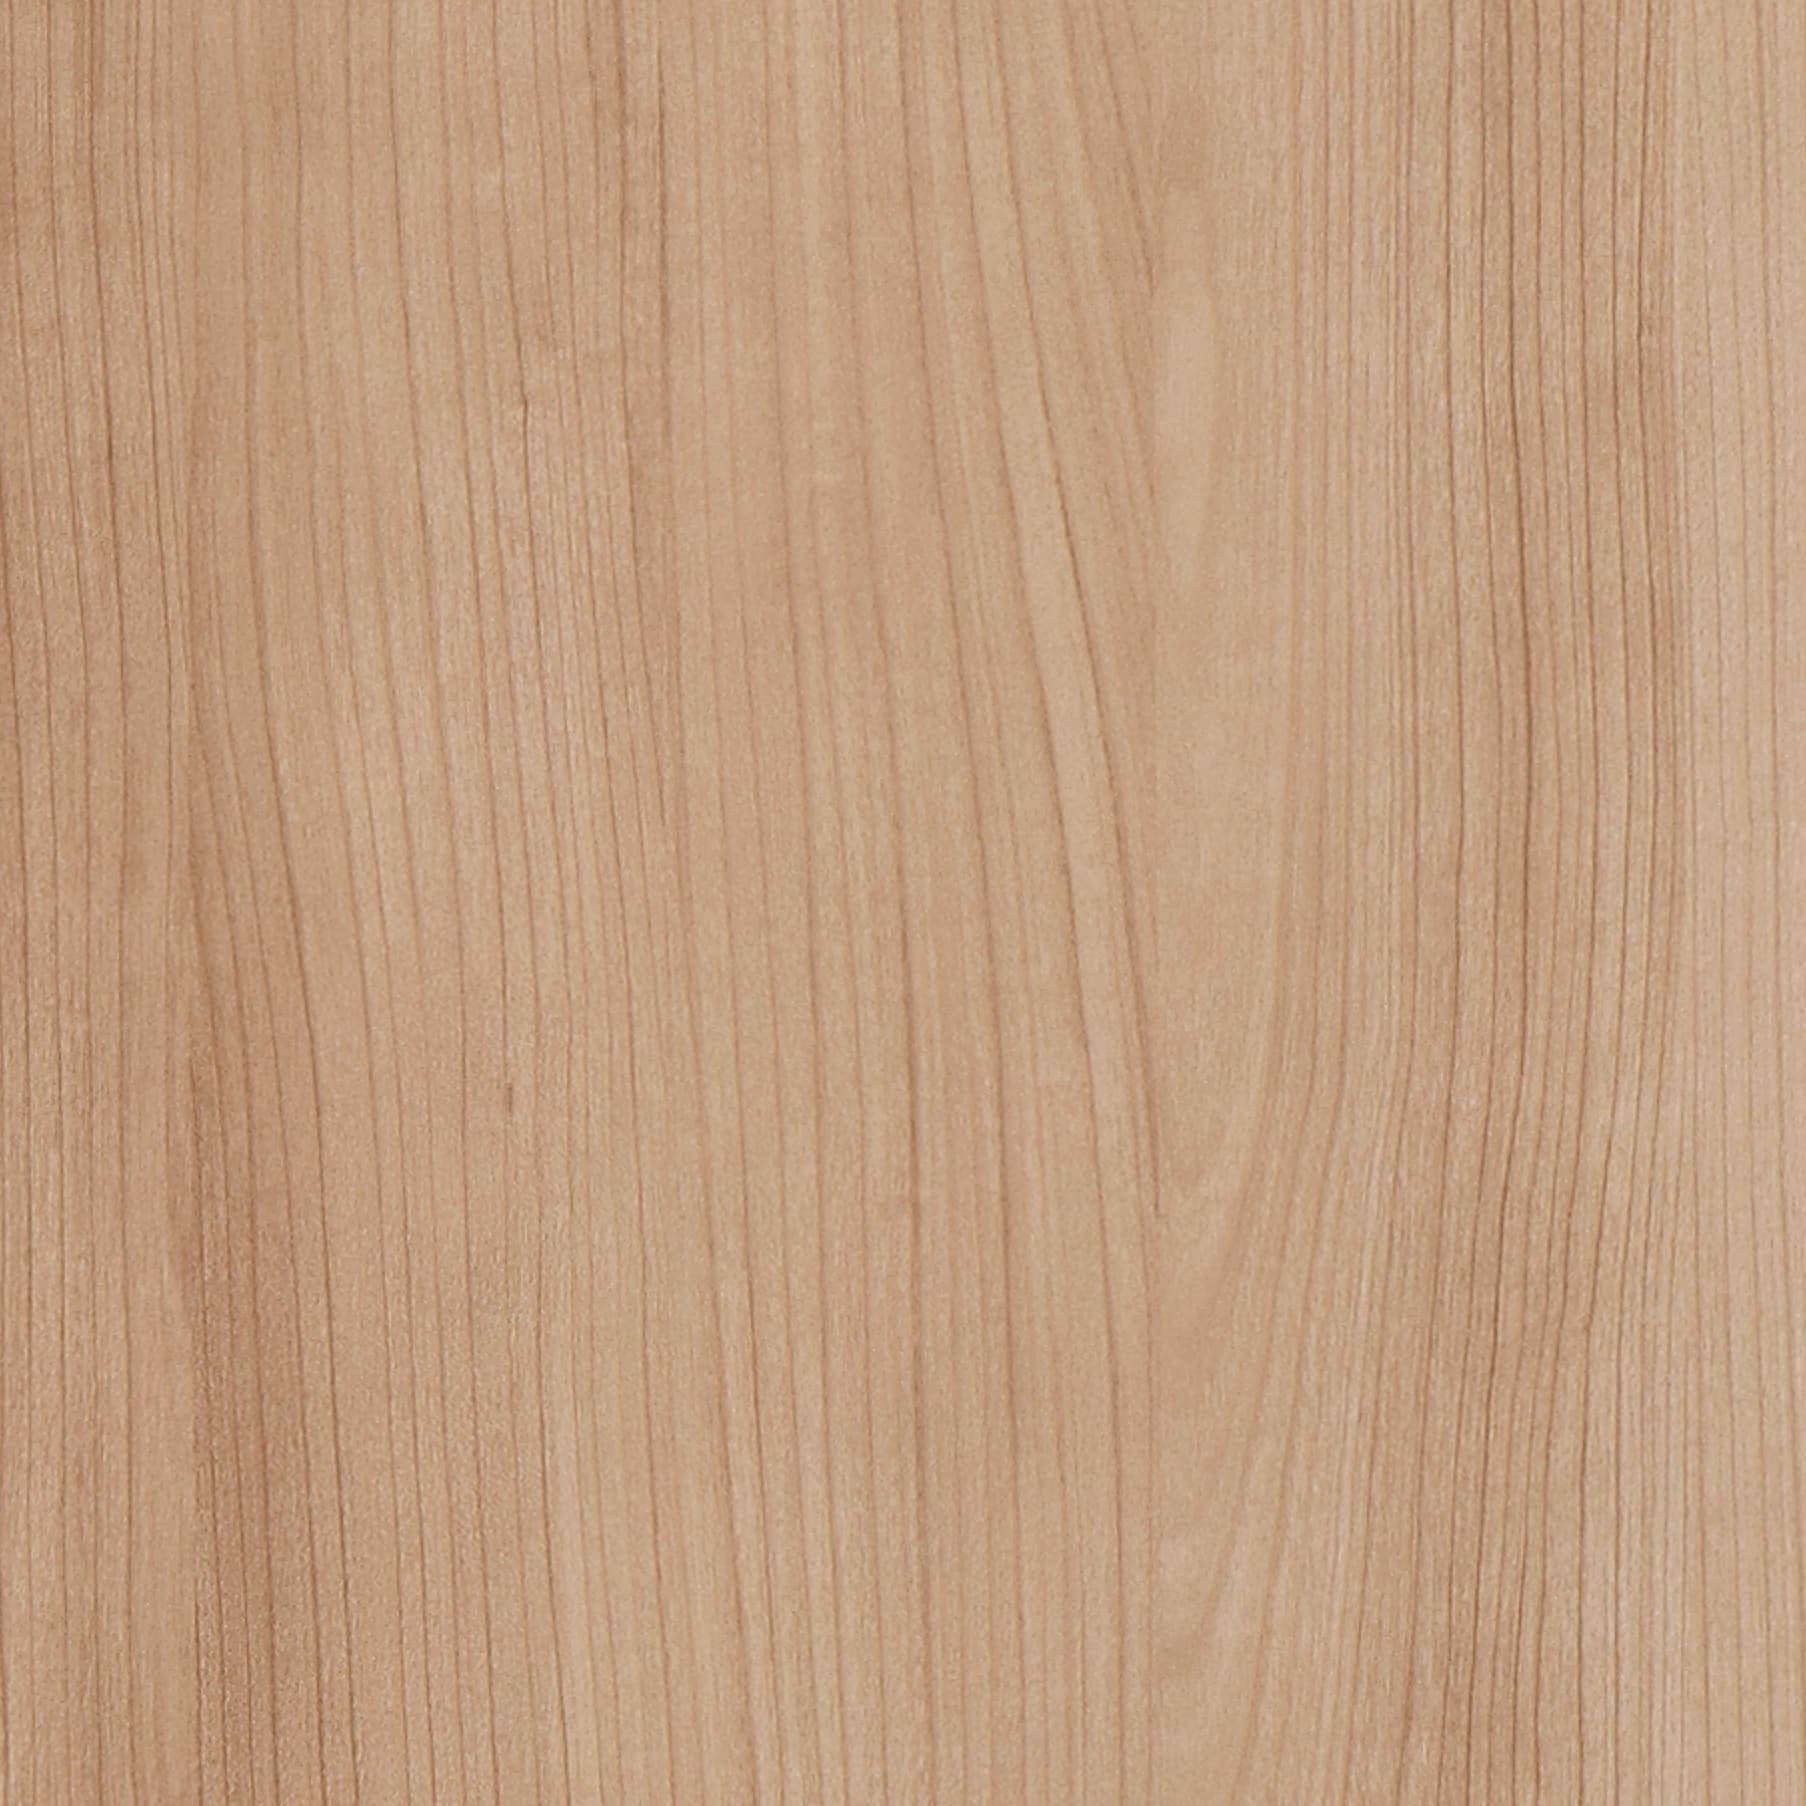 Laminate-Wheat-WH